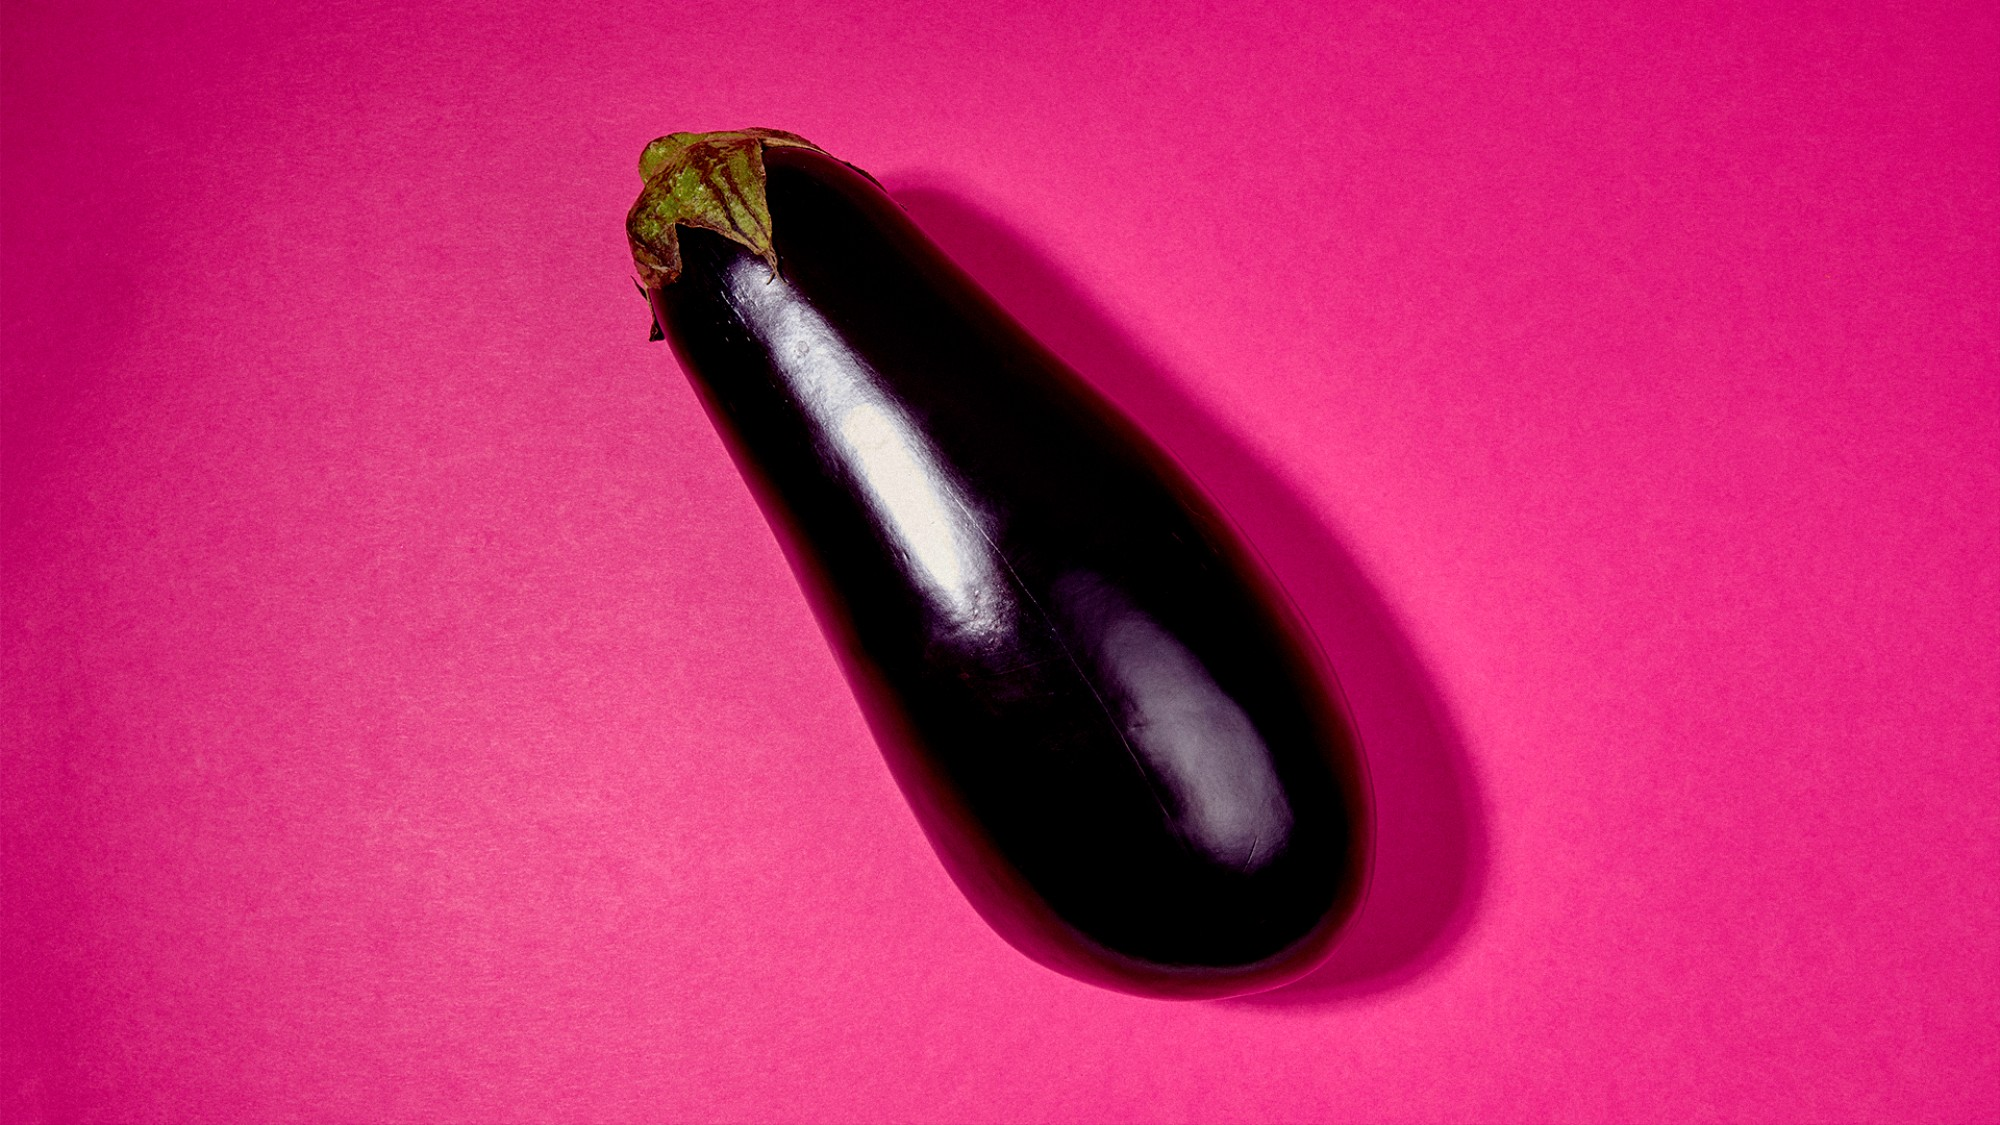 This $13,000 Penis Implant Makes Your Junk Bigger in an Hour ...